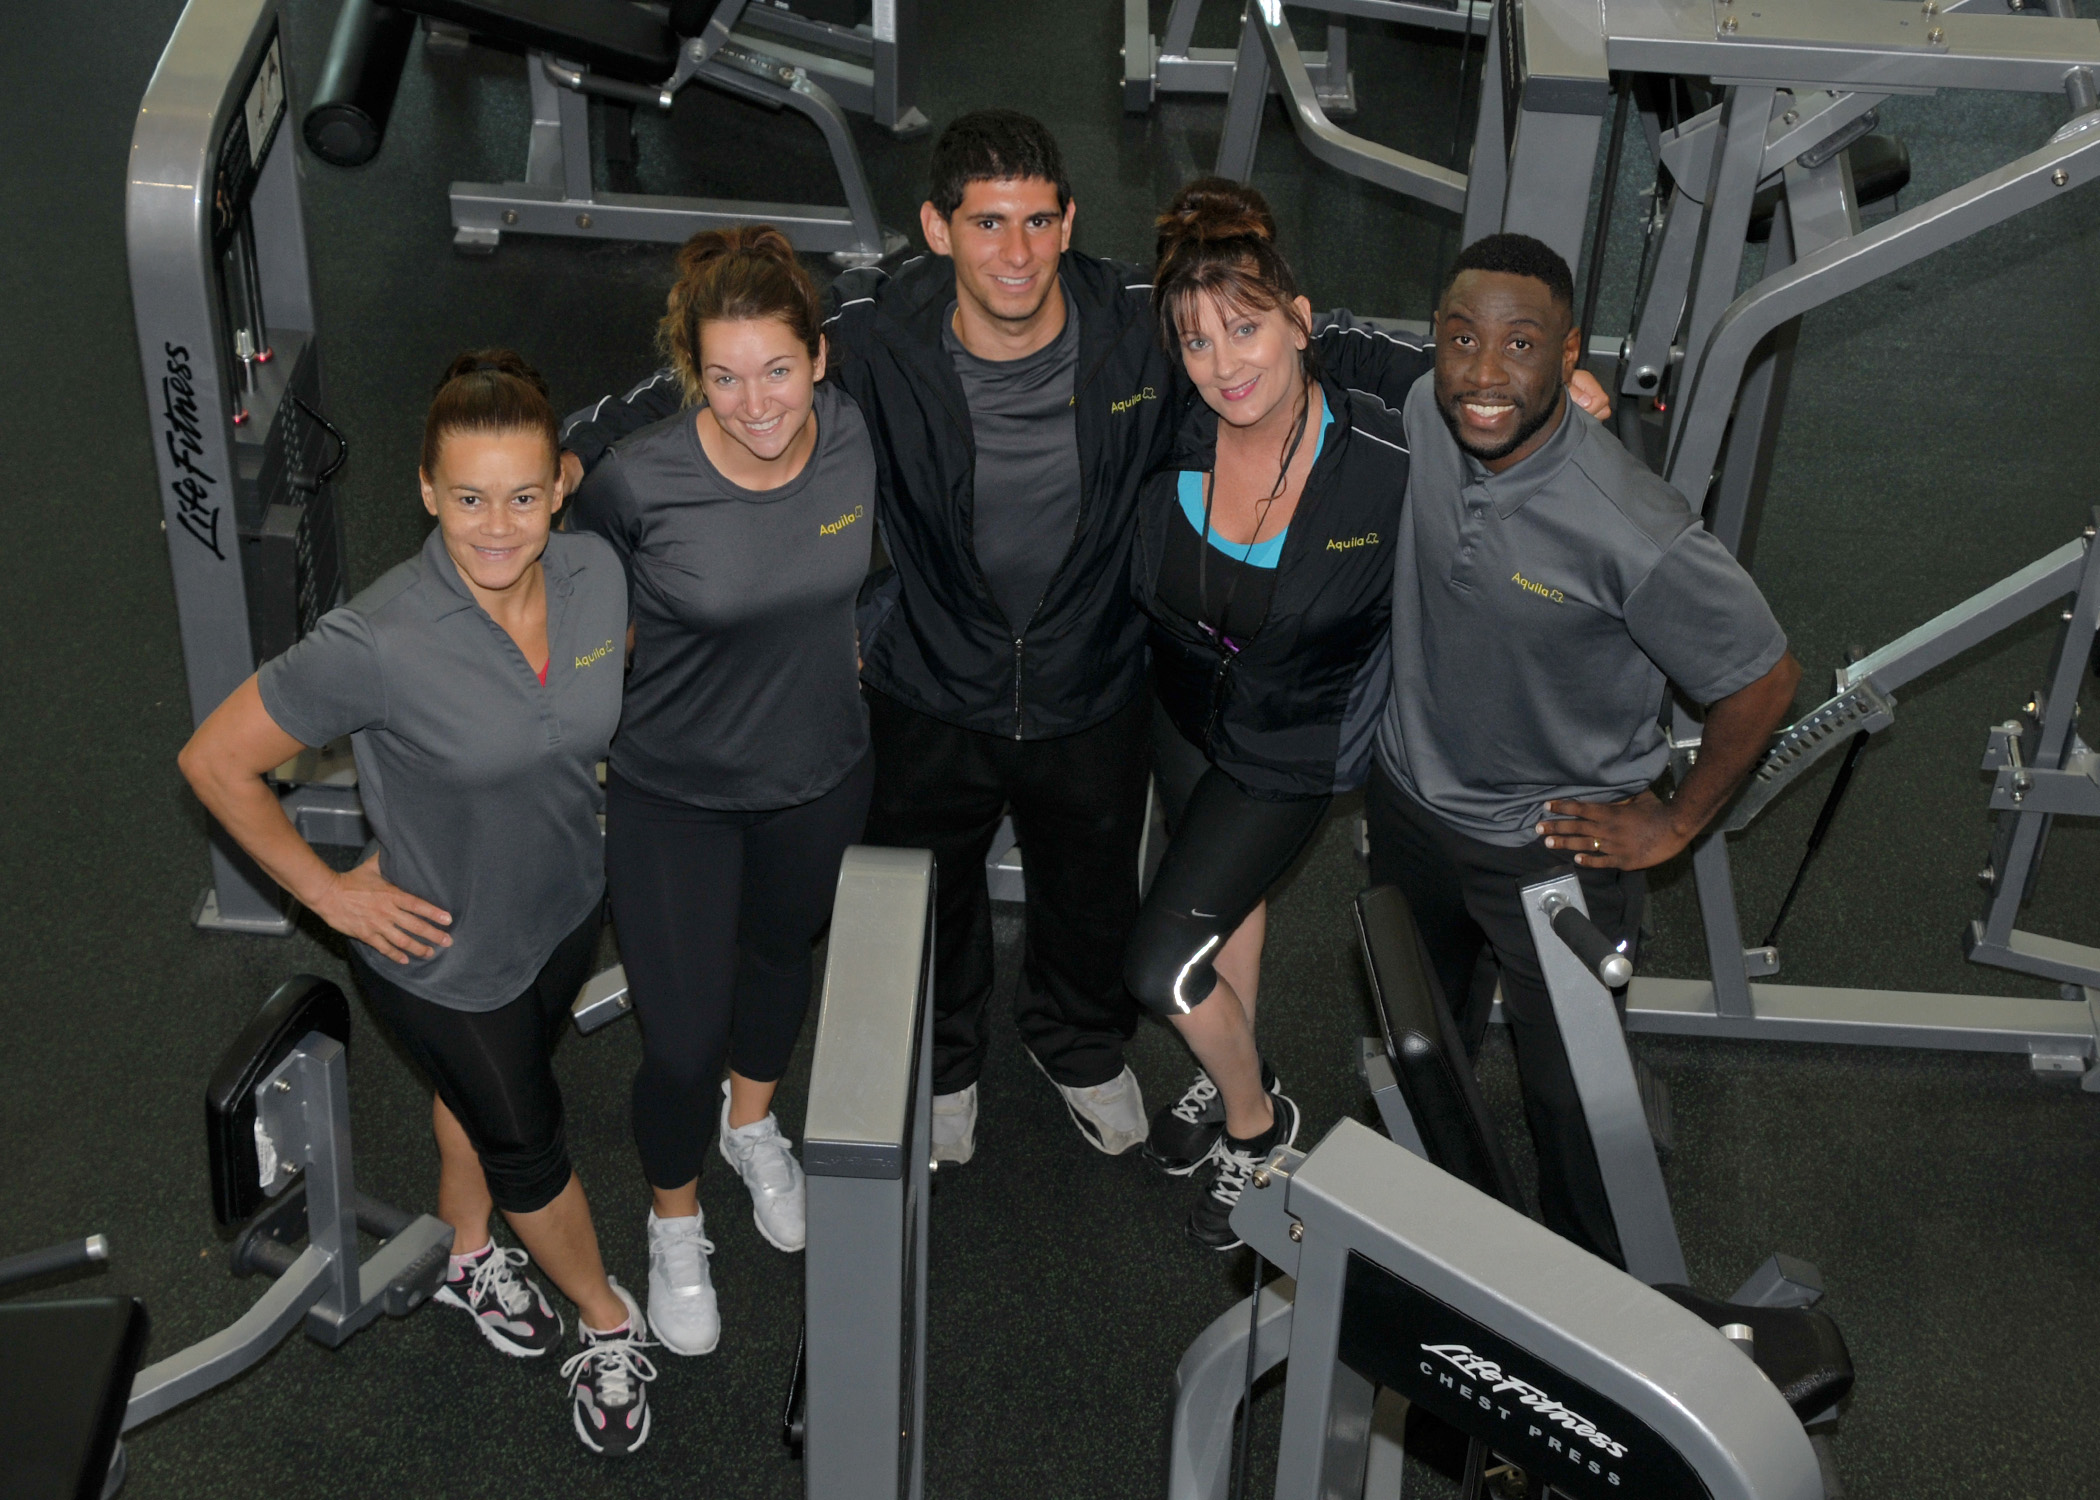 Staff at HQC Fitness Center